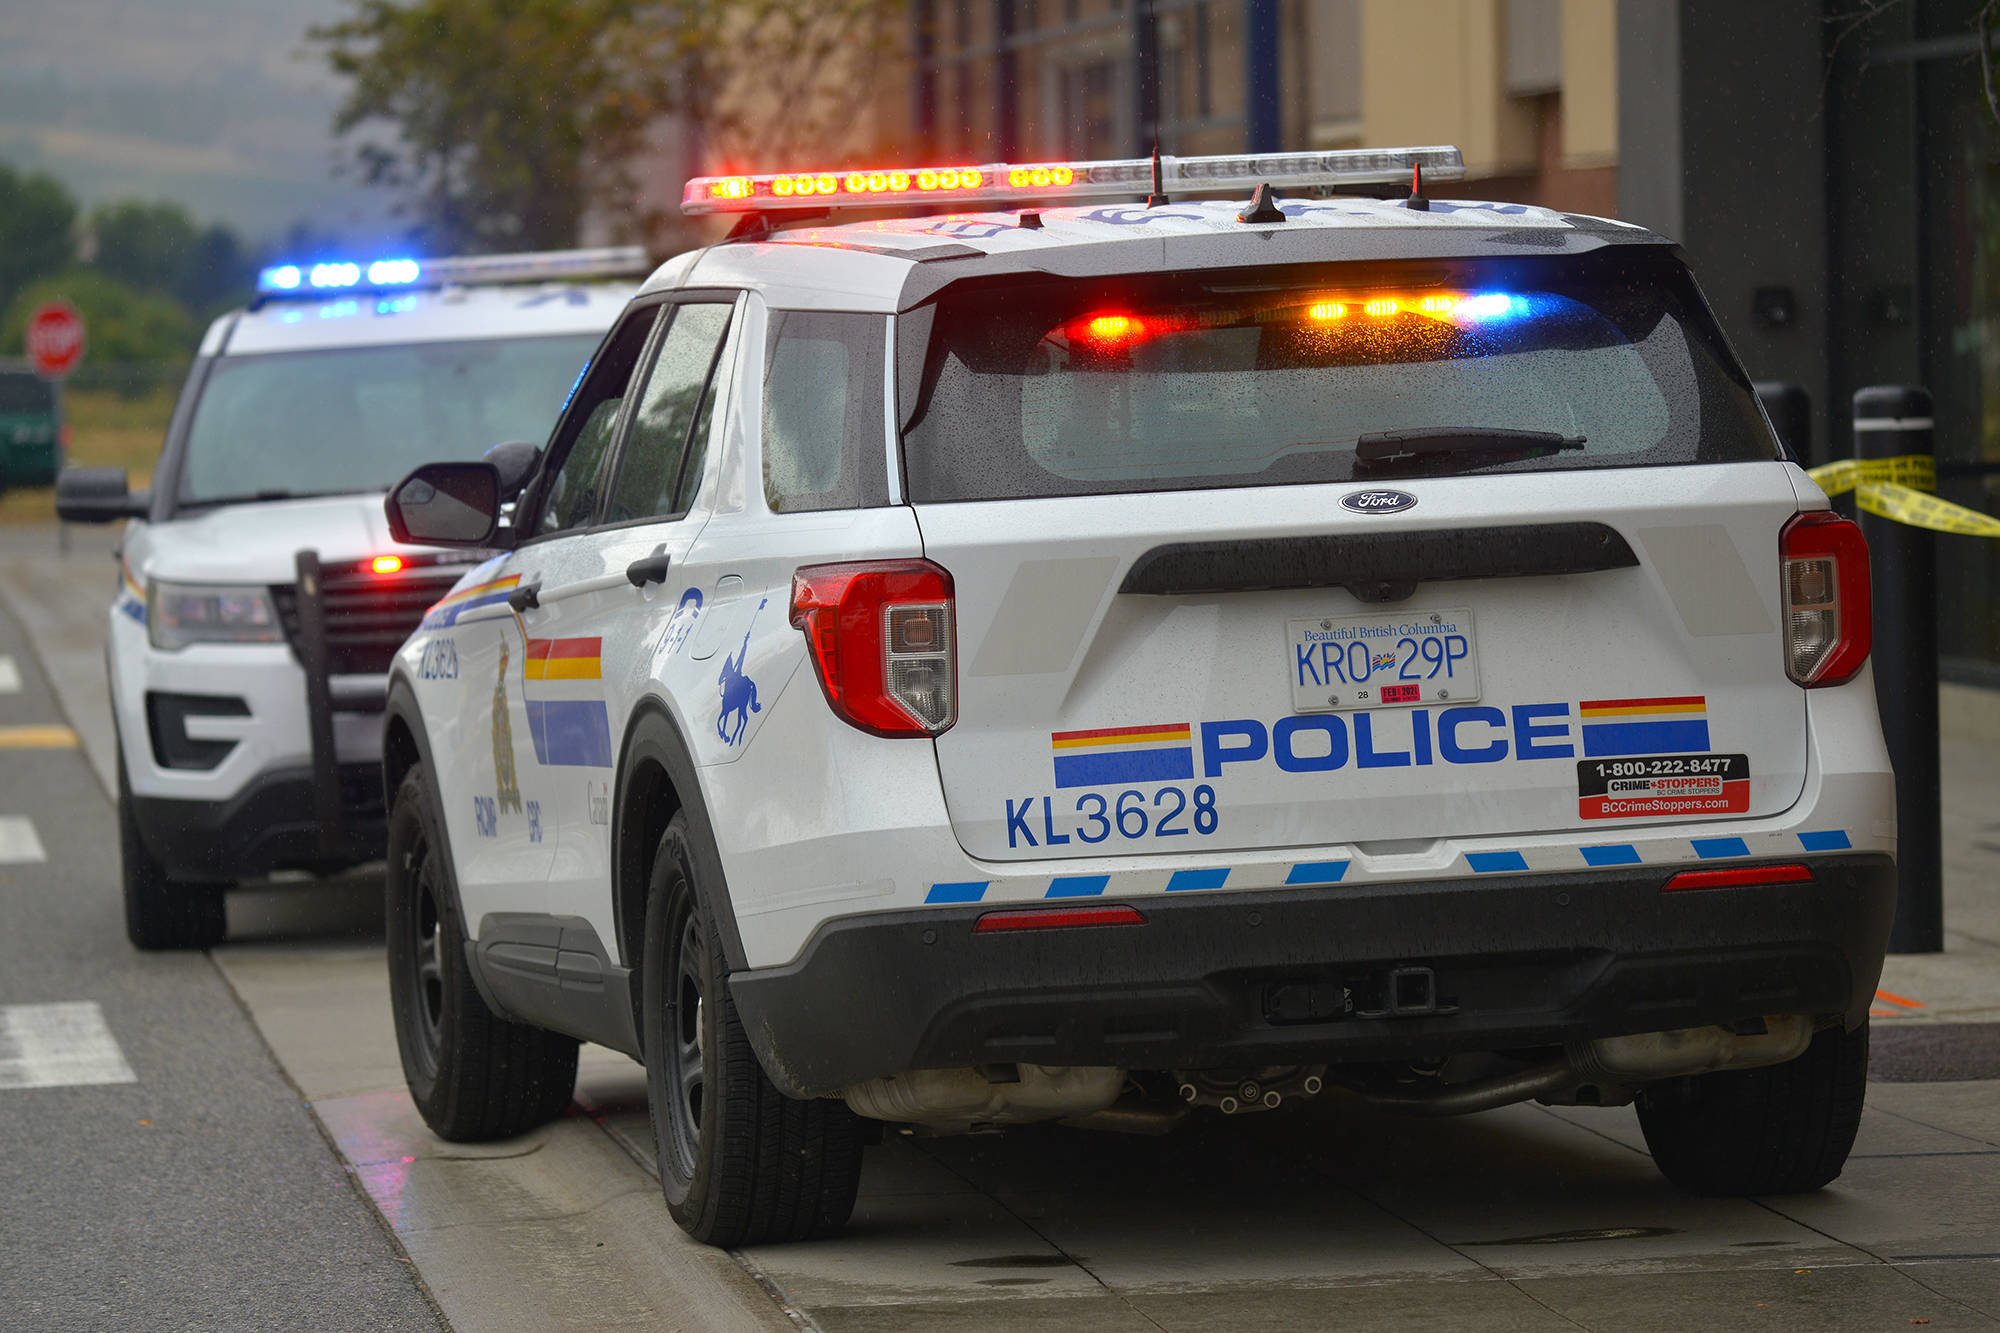 RCMP did not commit offense in arrest which seriously injured Lake Country man, finds IIO. (Phil McLachlan/Capital News/Stock)